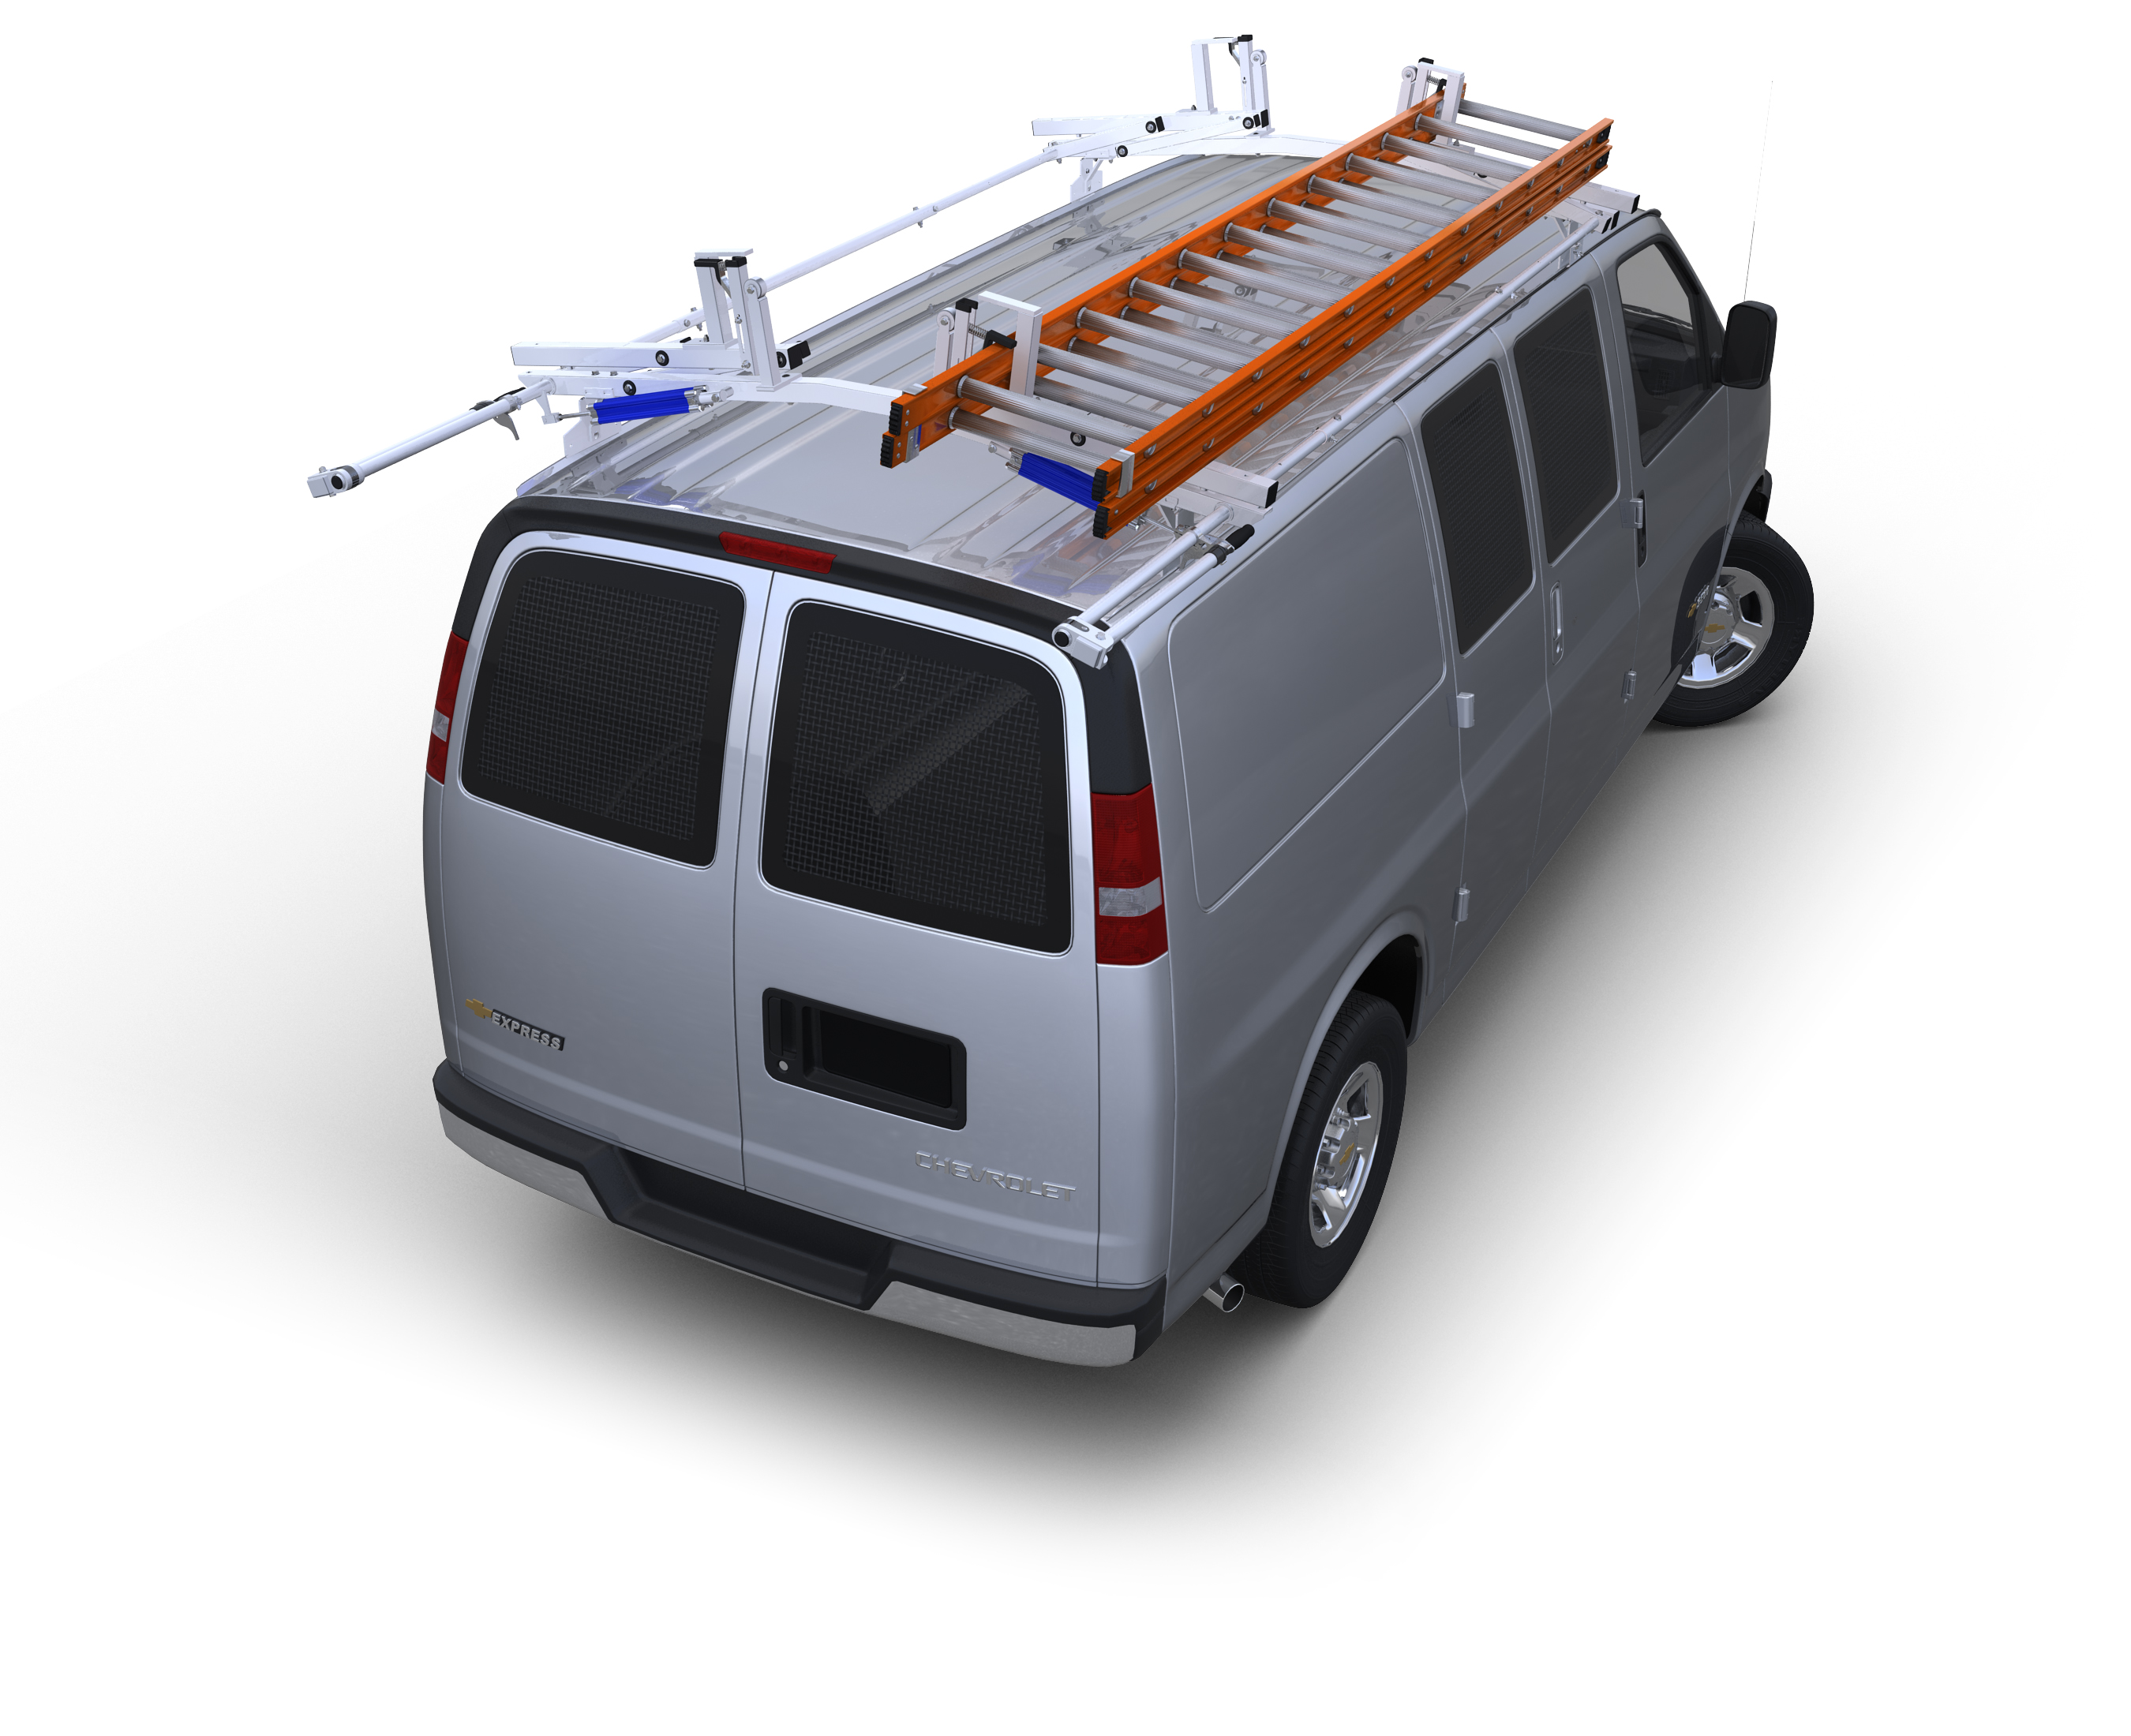 The All Aluminum AluRack™ Cargo Carrier for Sprinter Vans